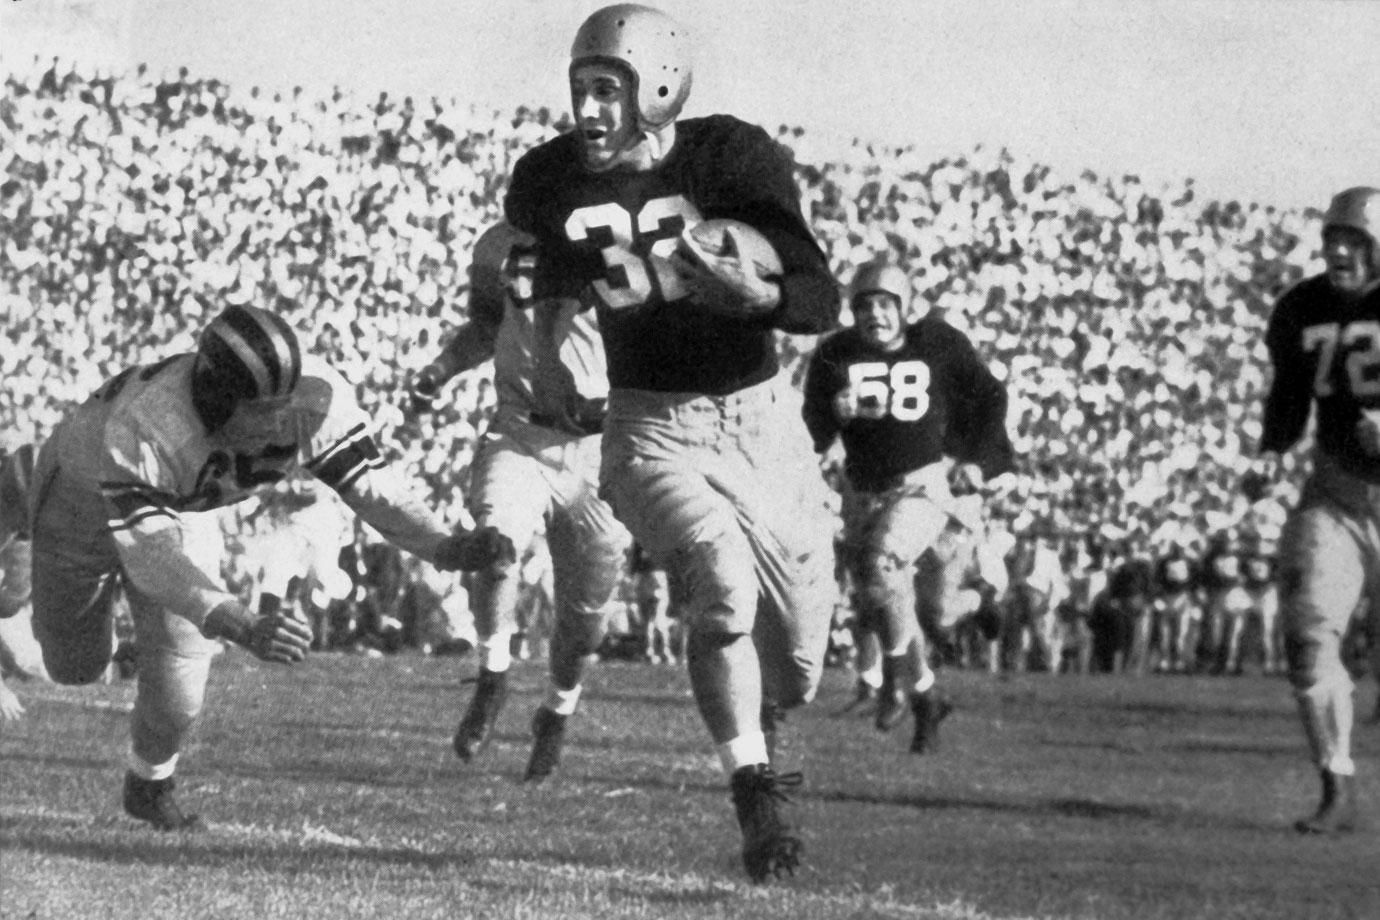 The 1947 Heisman winner led Notre Dame to national titles in each of his three years as a starter. Lujack threw for a touchdown, running for another and intercepting a pass in his first start before leaving Notre Dame for two years to serve in the military. He picked up where he left off in 1946 to win two more championships, never losing a game in those two years. Lujack won the Heisman Trophy as a senior, when he threw for 777 yards and nine touchdowns and rushed for 139 yards and another score. His biggest impact may have been a defensive play when he tackled Army's Doc Blanchard to prevent a touchdown and preserve a scoreless tie.